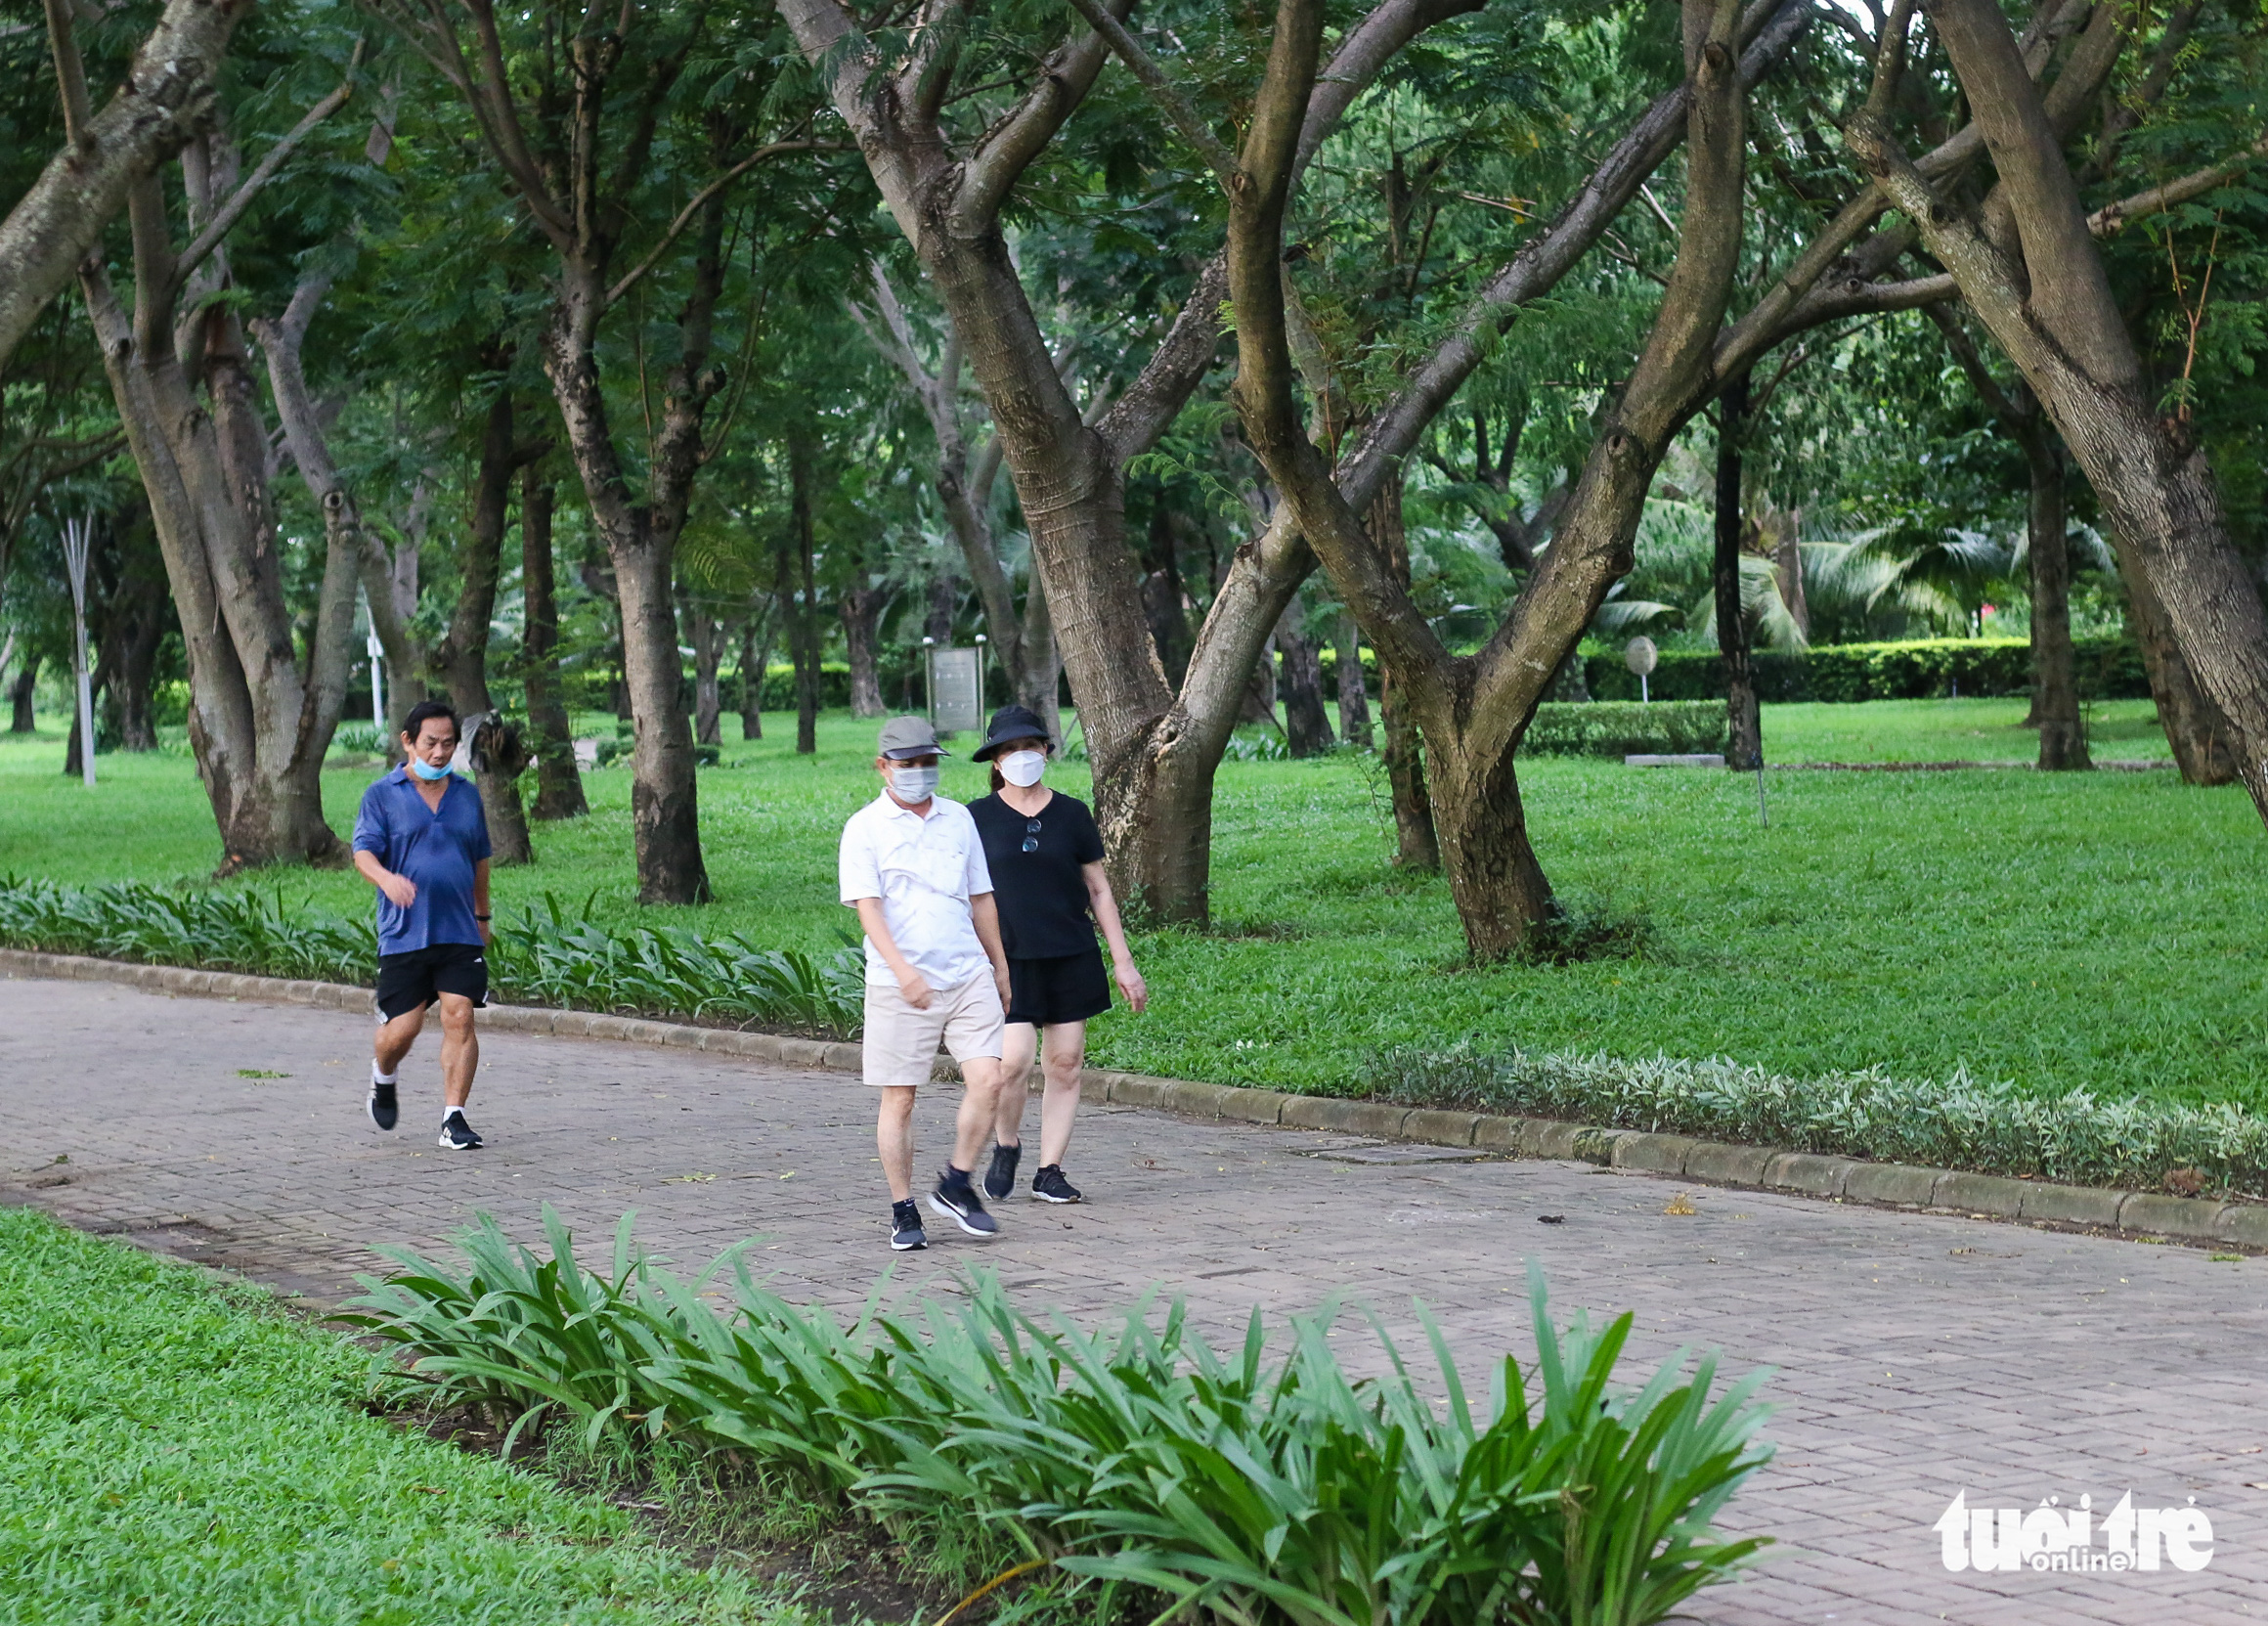 People go for a walk at a park in District 7, Ho Chi Minh City, September 21, 2021. Photo: Chau Tuan / Tuoi Tre